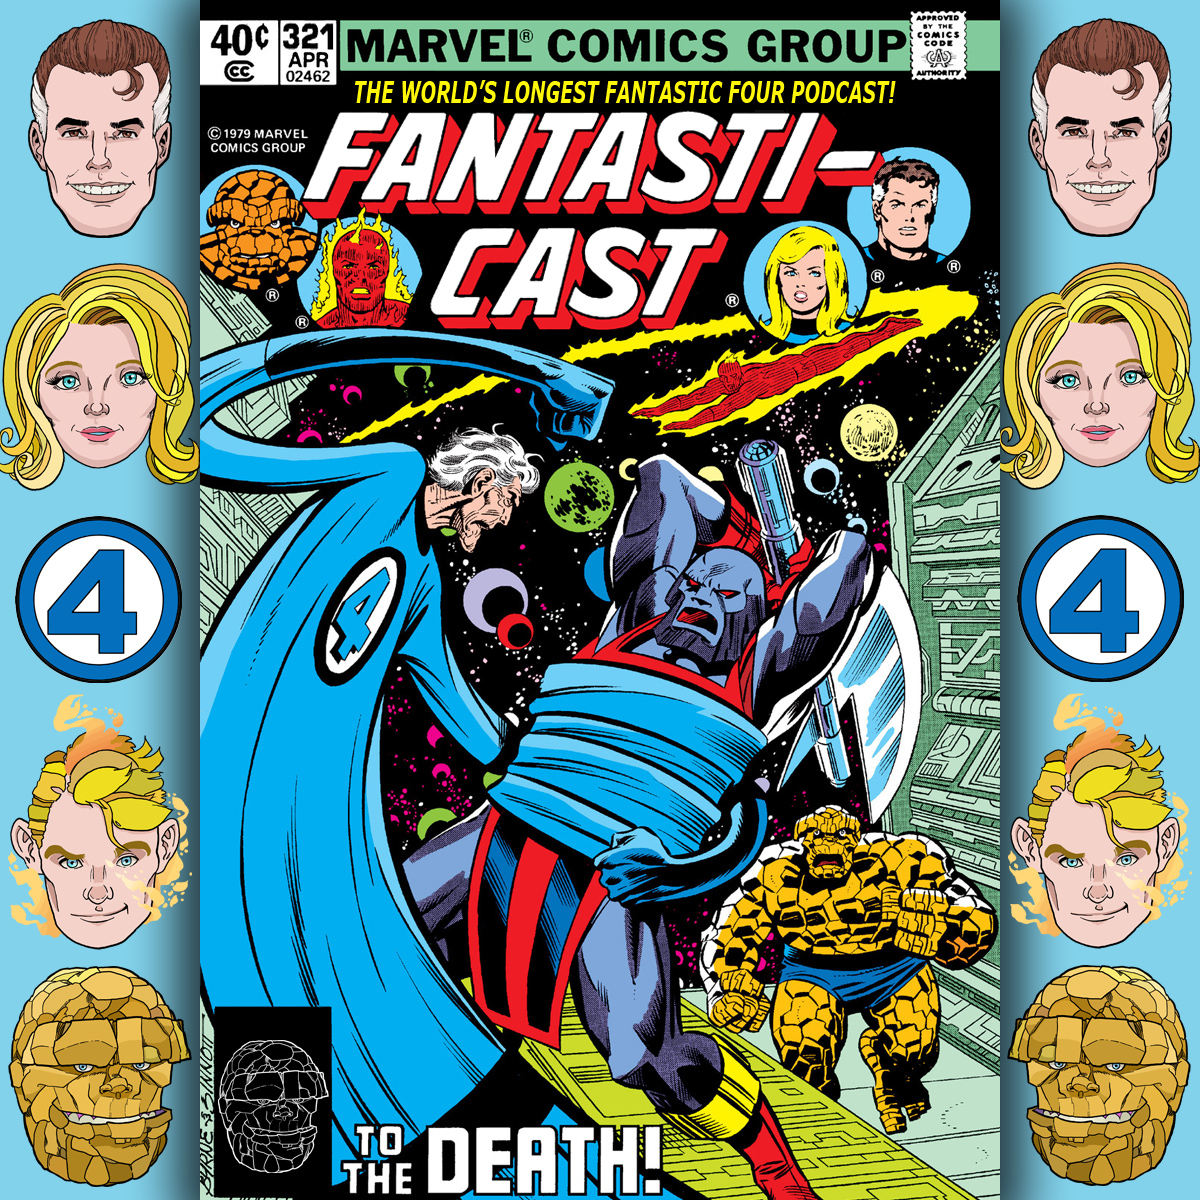 The Fantasticast Episode 321